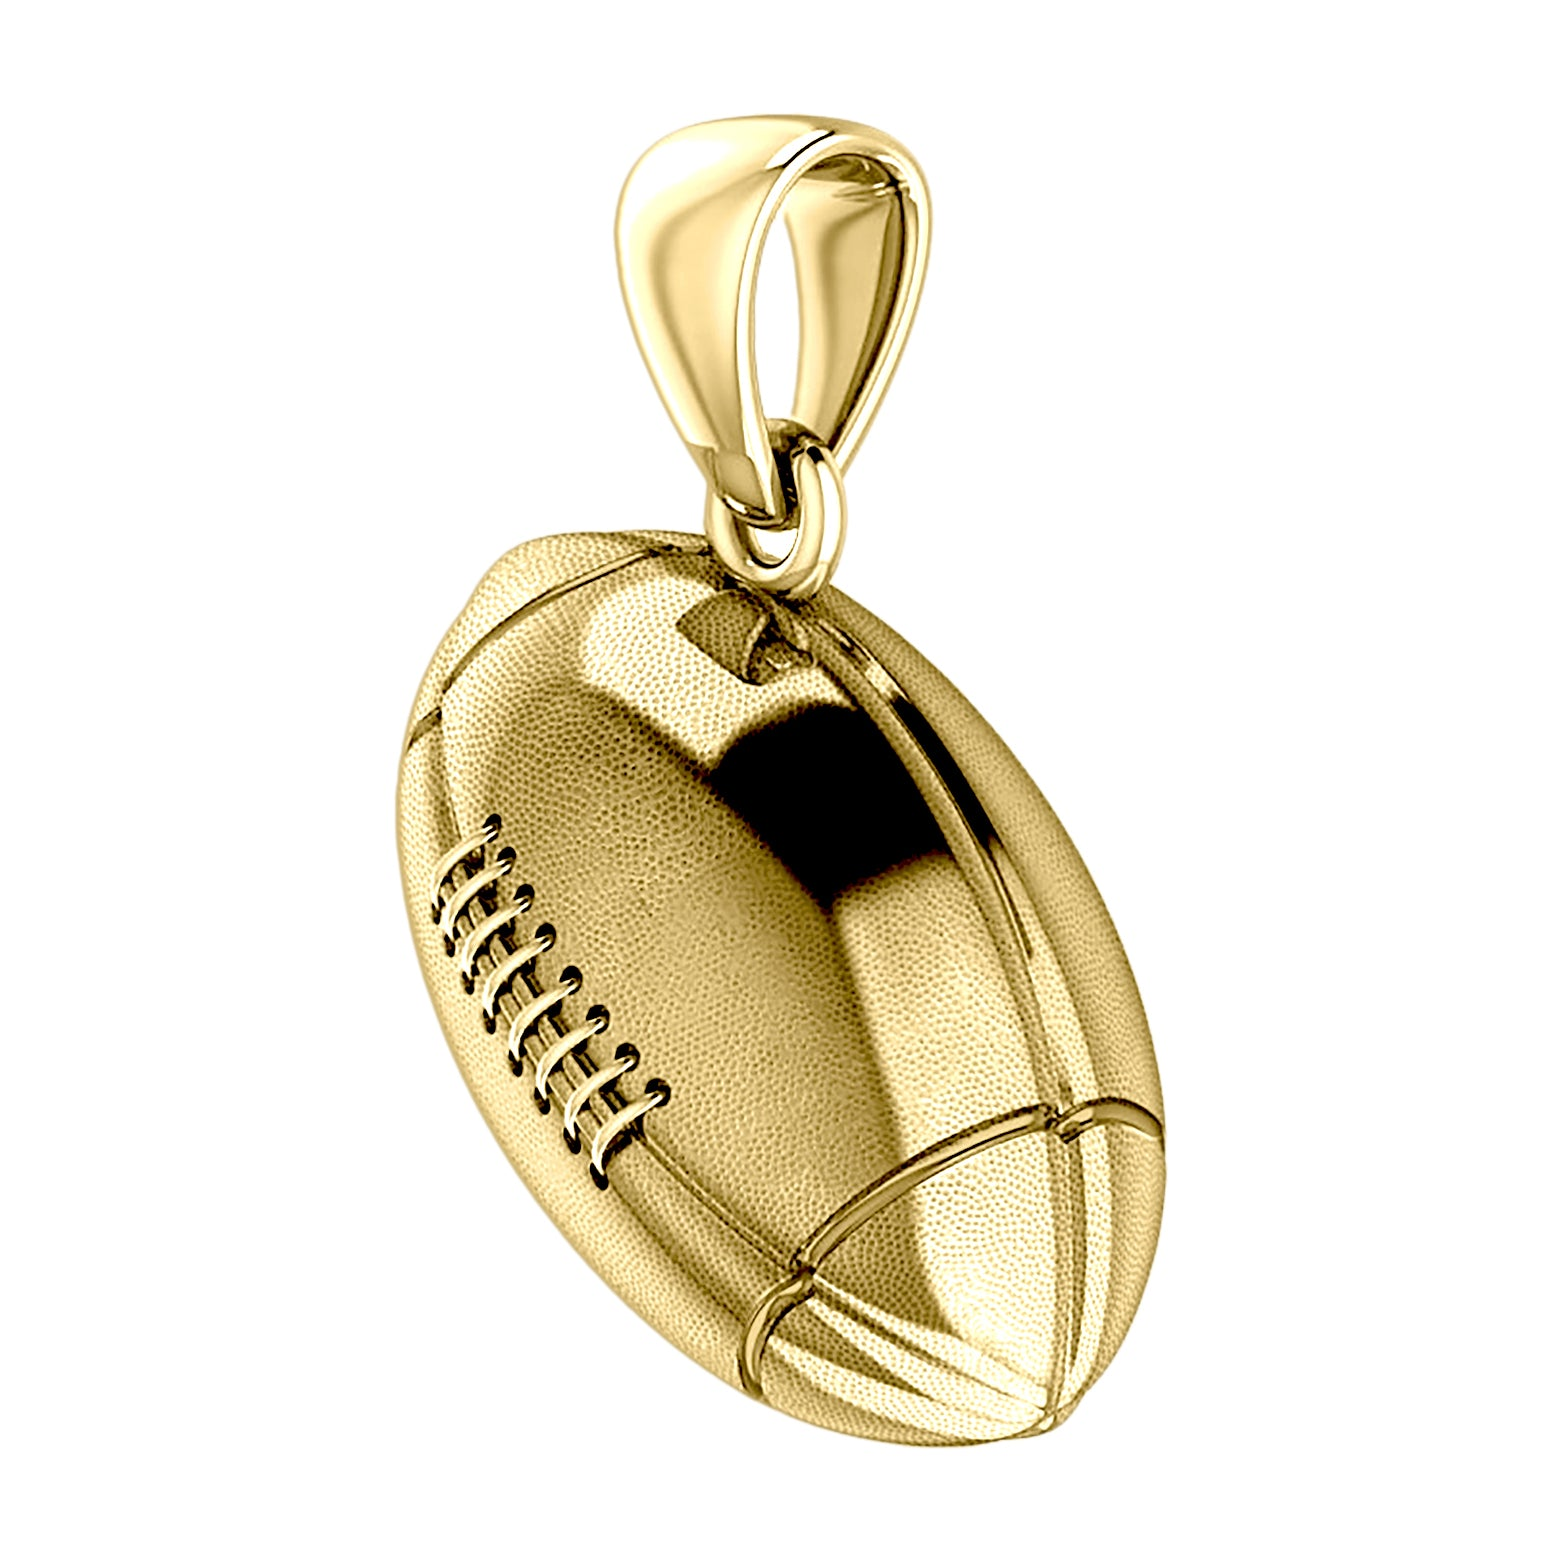 Extra Large 10K or 14K Yellow Gold 3D Football Pendant Necklace, 29mm